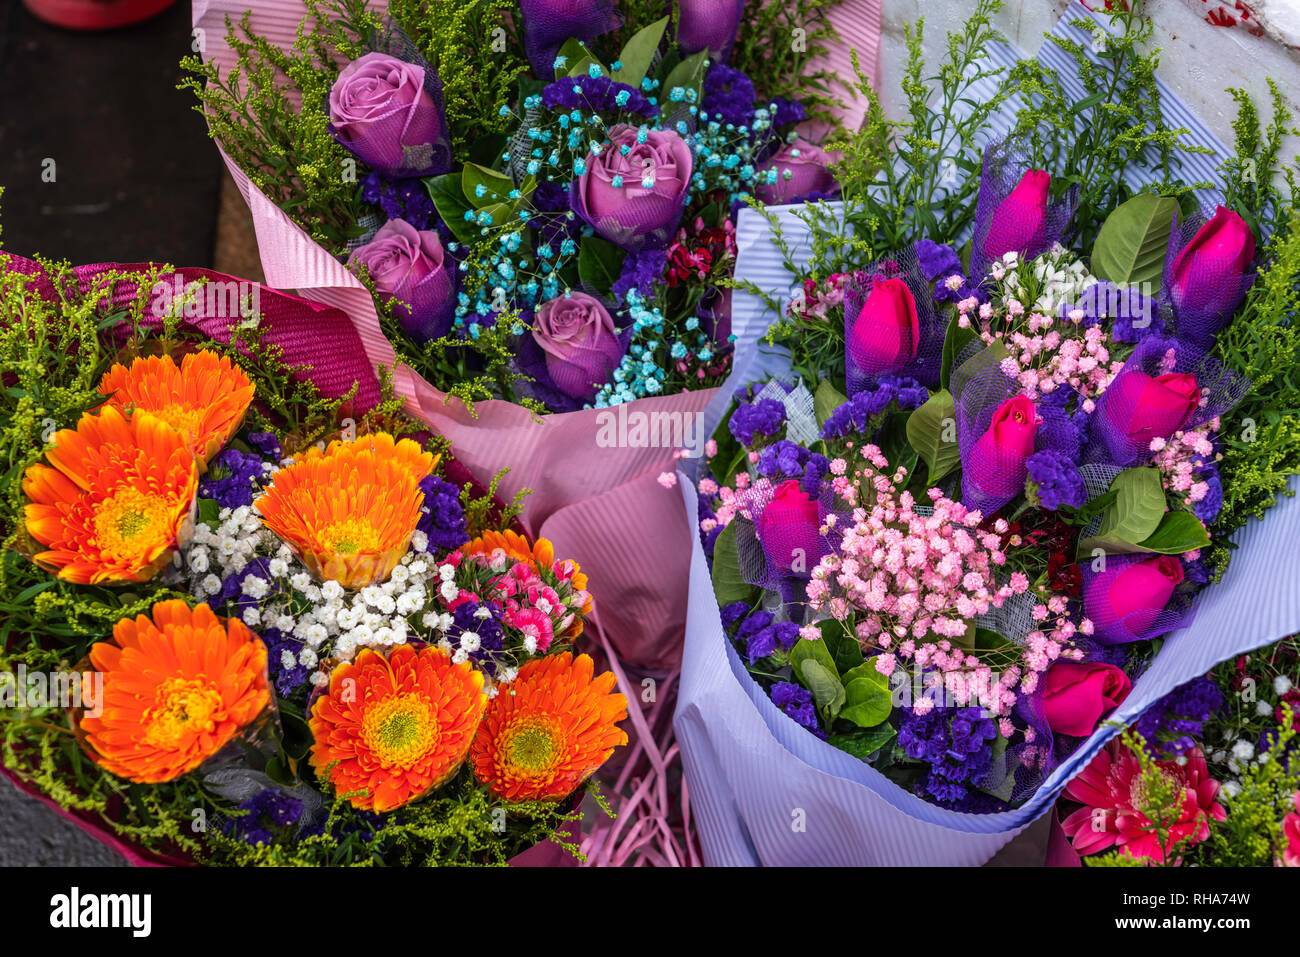 Closeup of flowers in the Flower Market of Kowloon, Hong Kong, China, Asia. - Stock Image